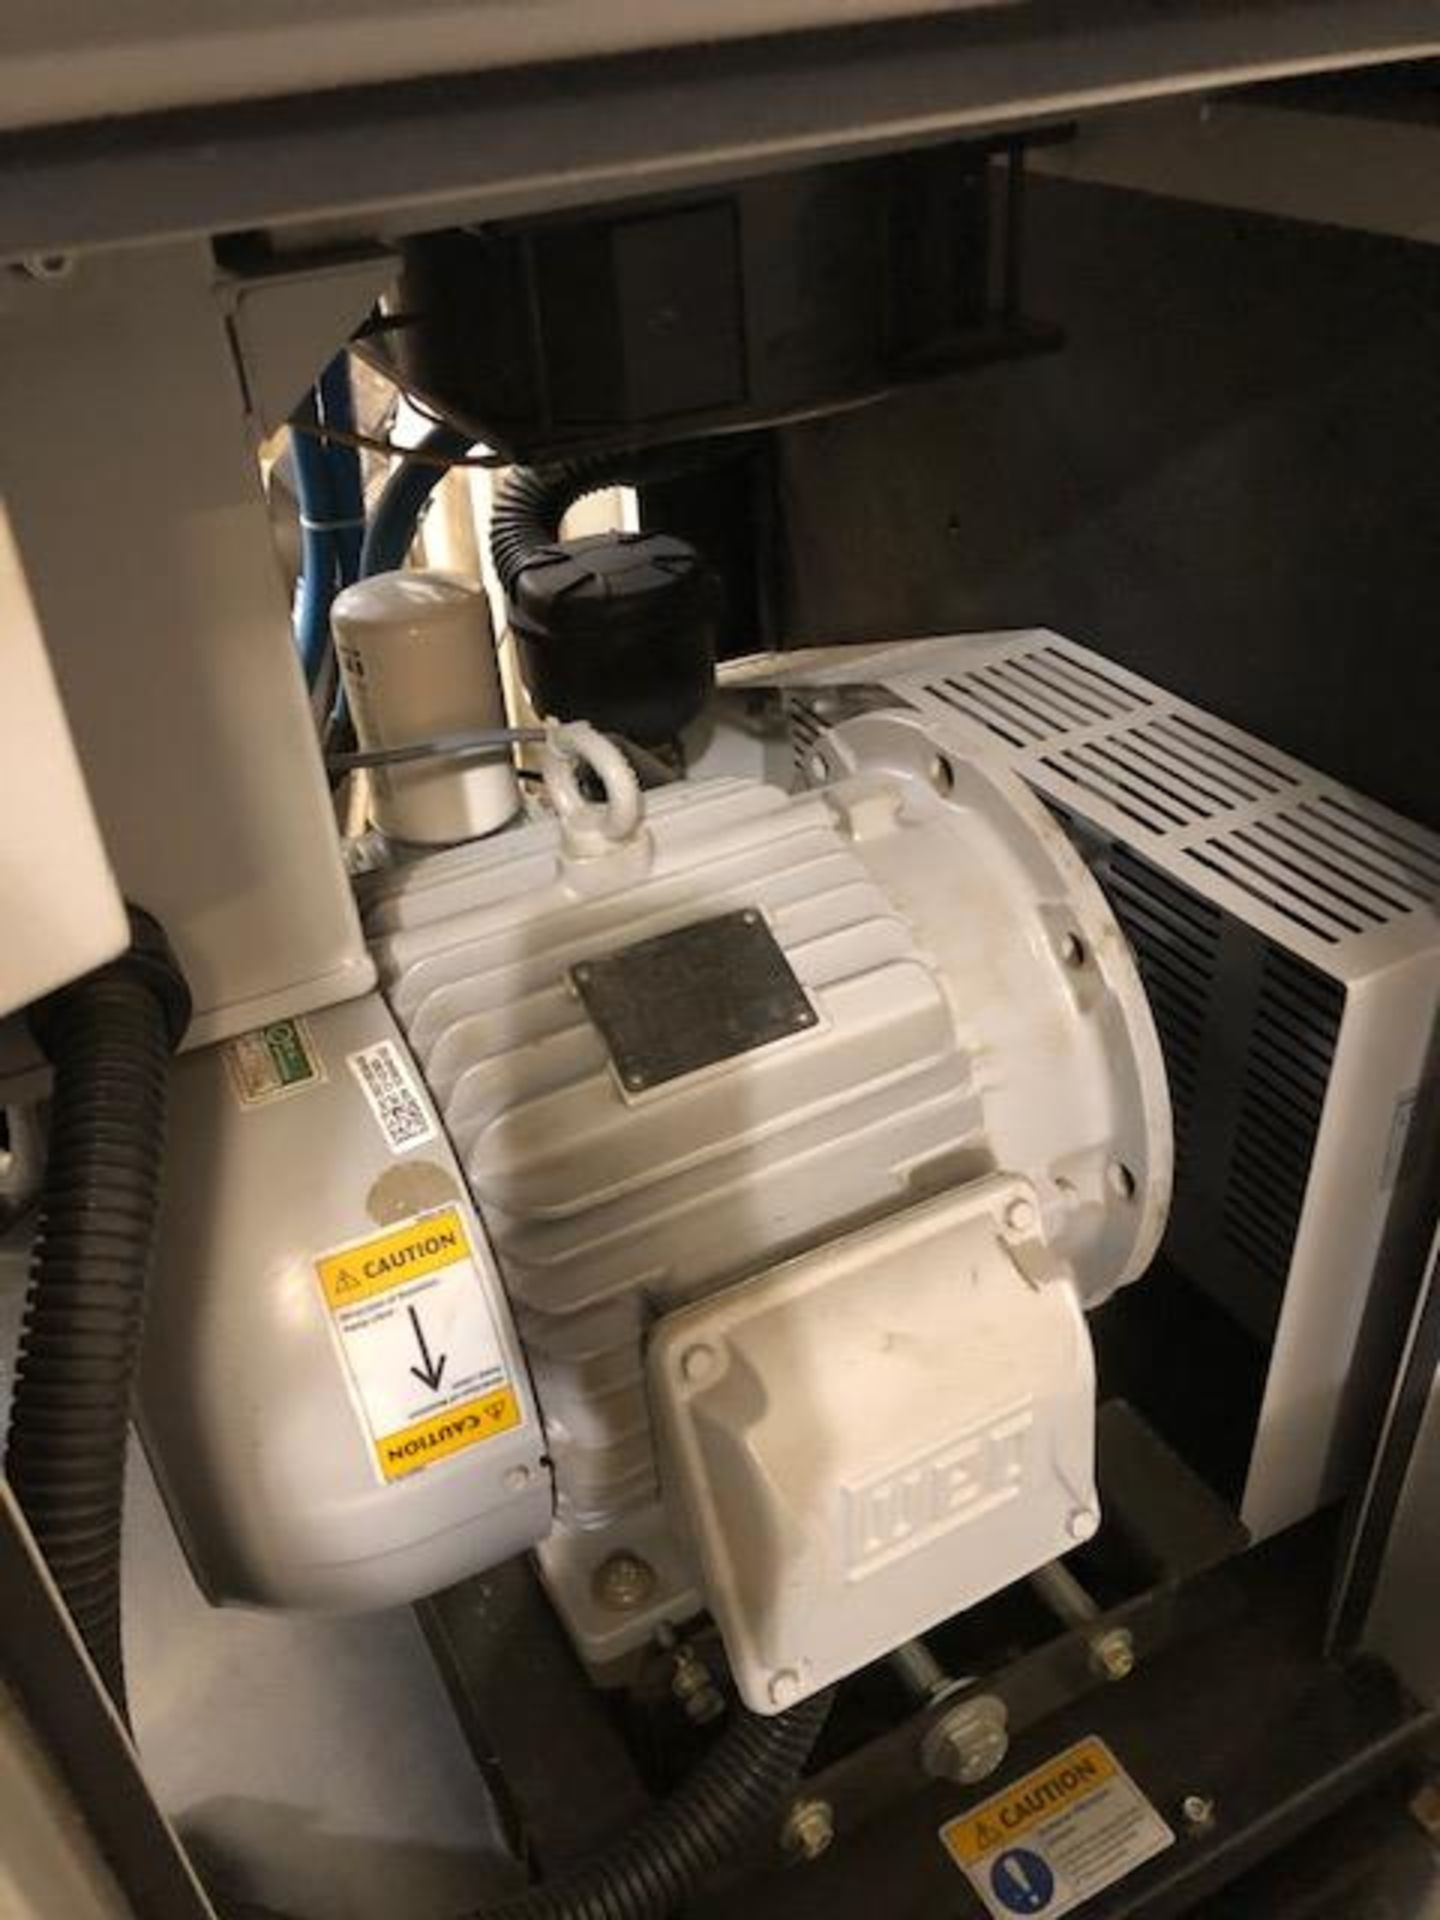 Used-Green Vault Systems Precision Batcher for Batching & Packaging Flower w/ Air Compressor - Image 17 of 23